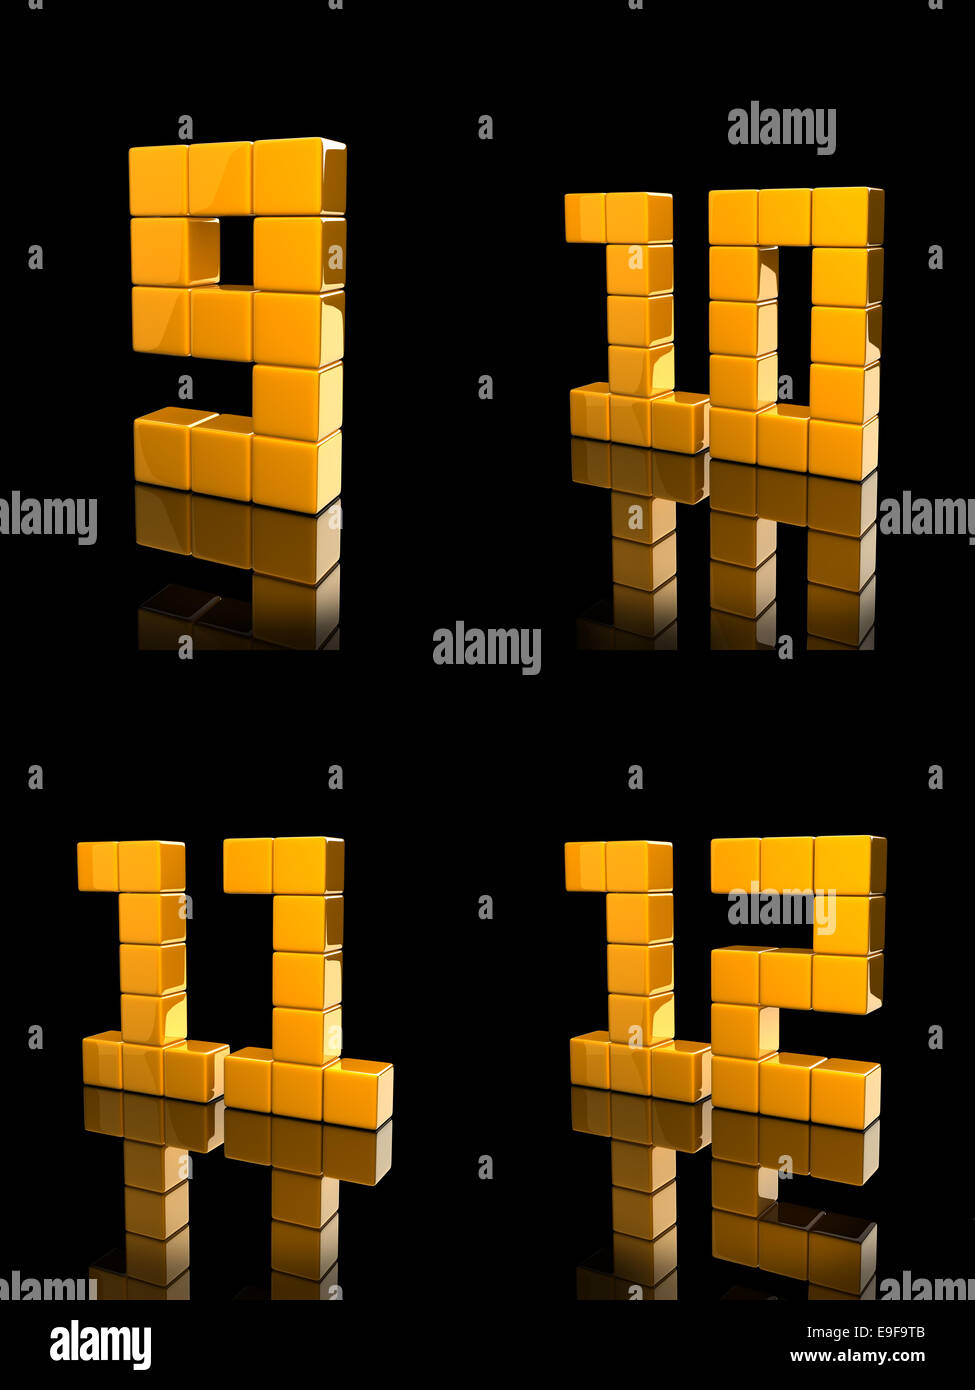 orange number composed by reflective cubes. Digitally Generated Image, - Stock Image